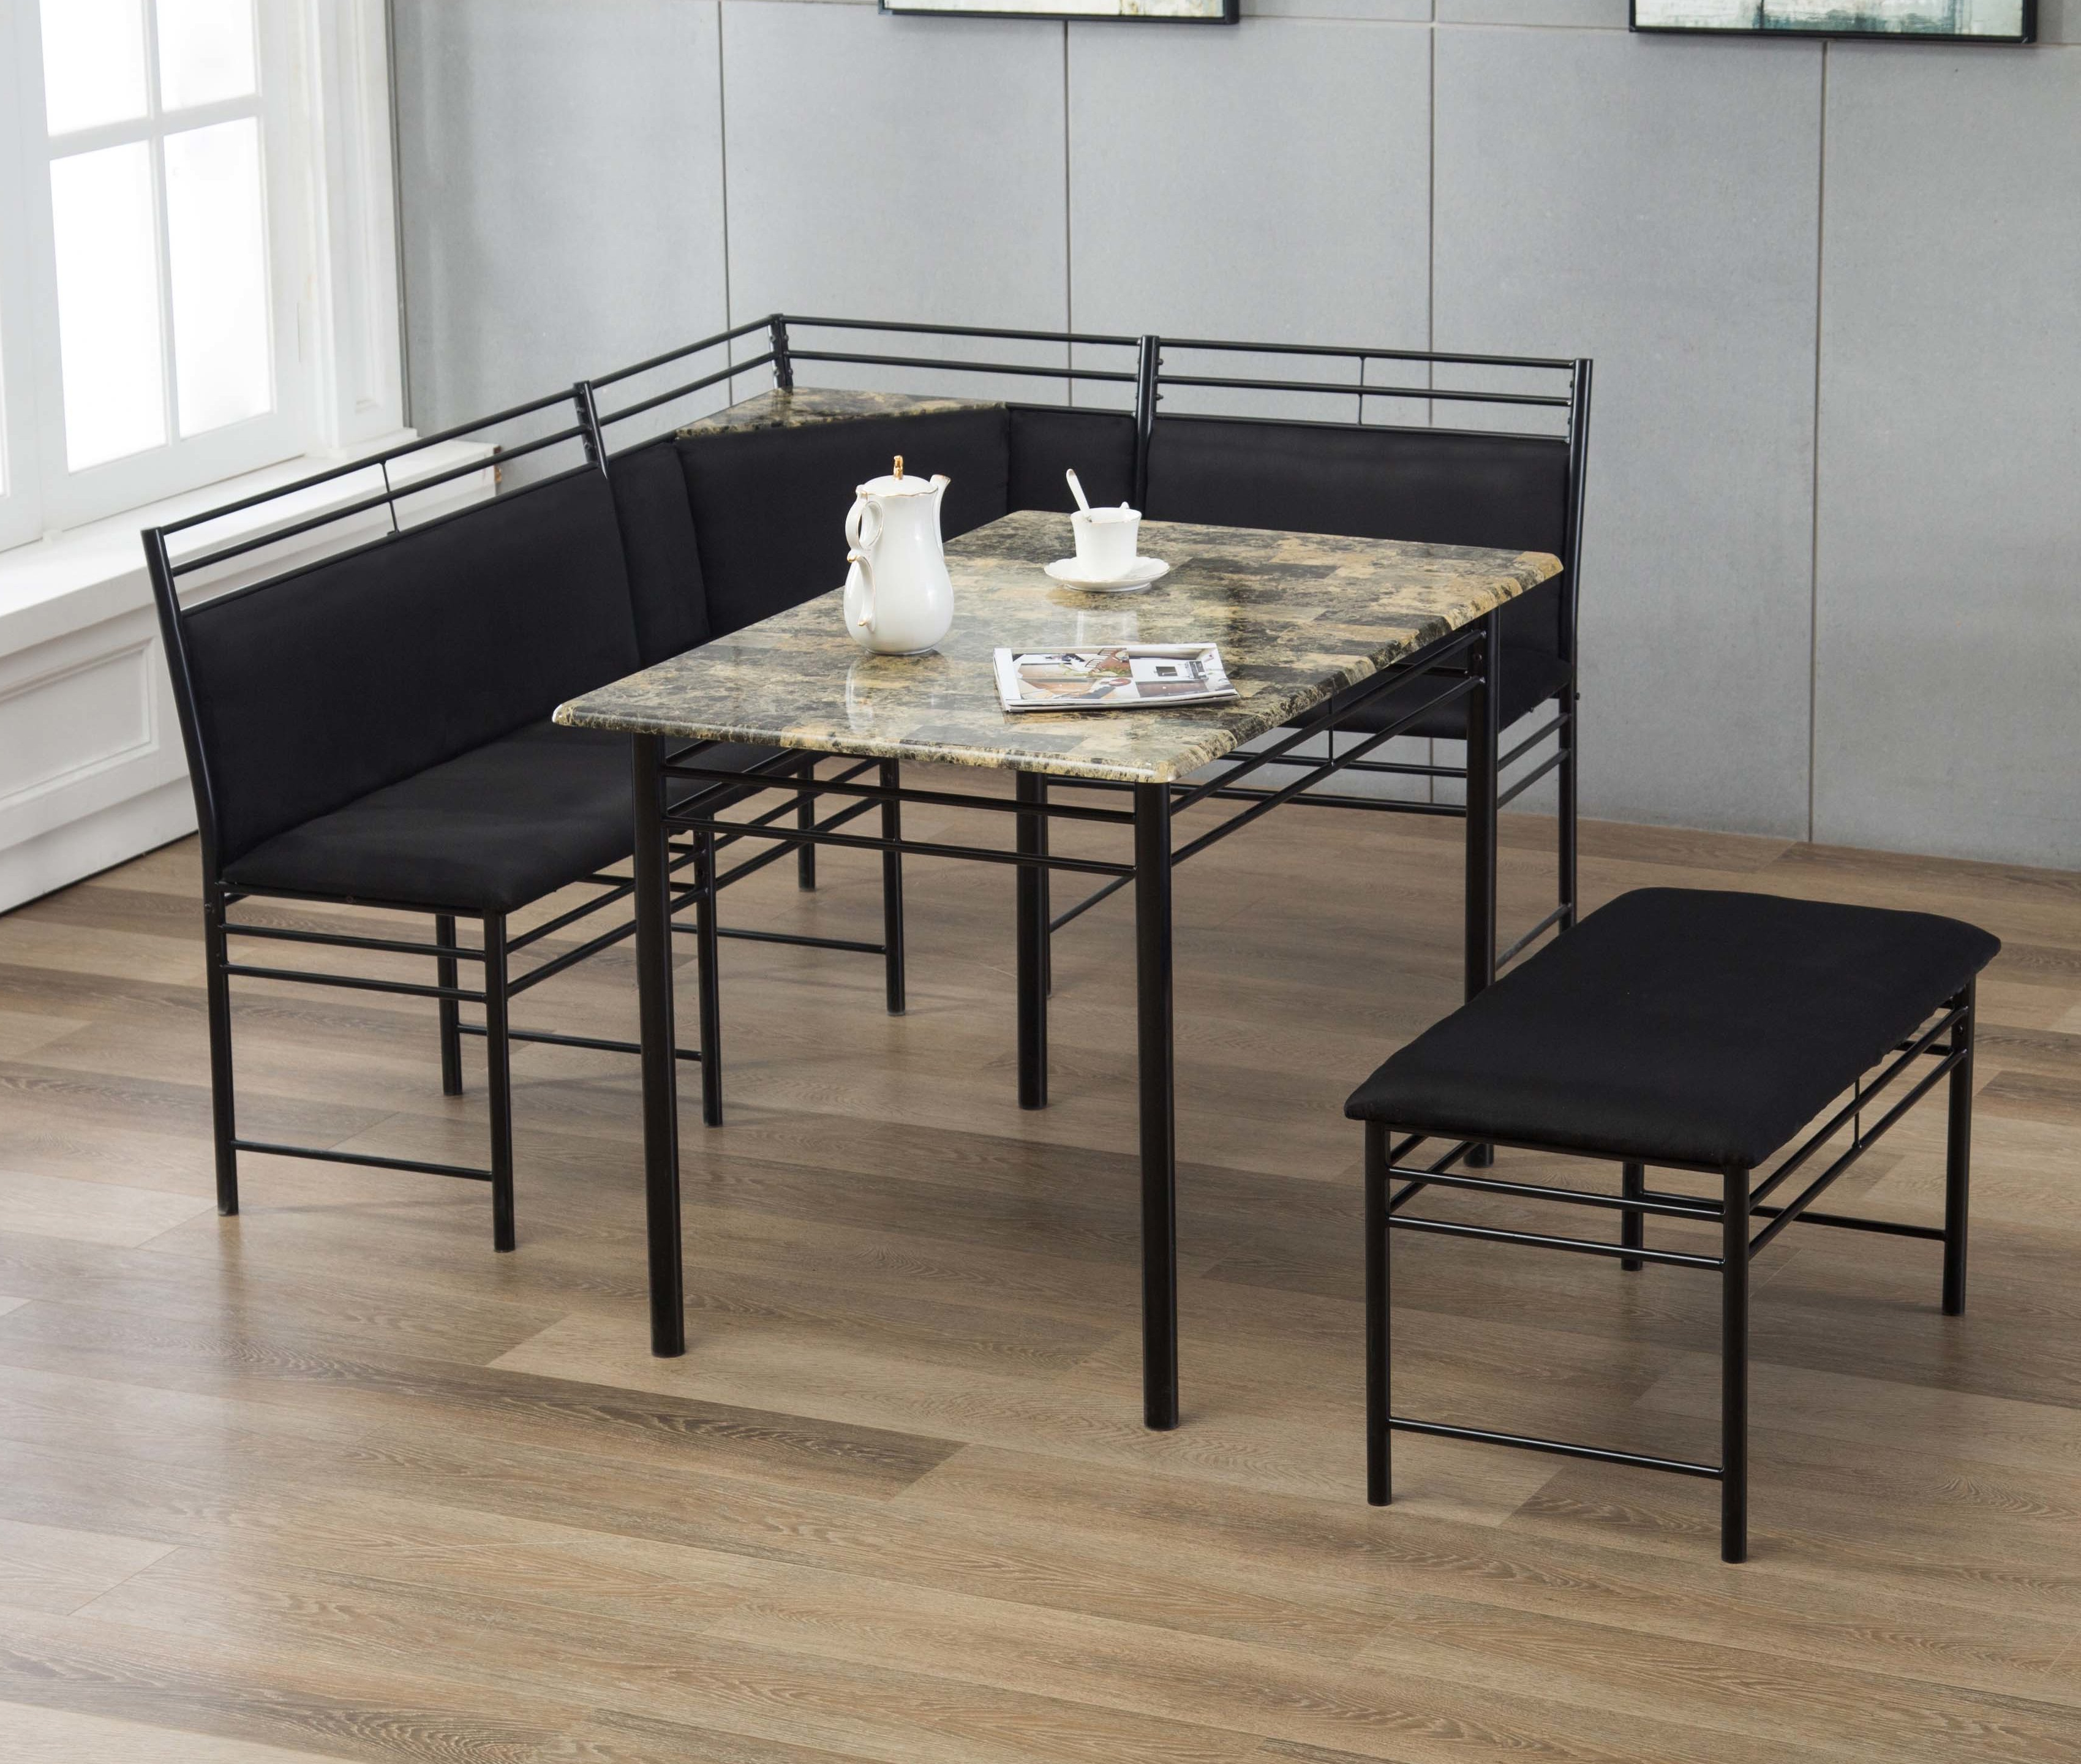 Ryker 3 Piece Dining Sets Within 2018 Tyrell 3 Piece Breakfast Nook Dining Set (View 16 of 20)